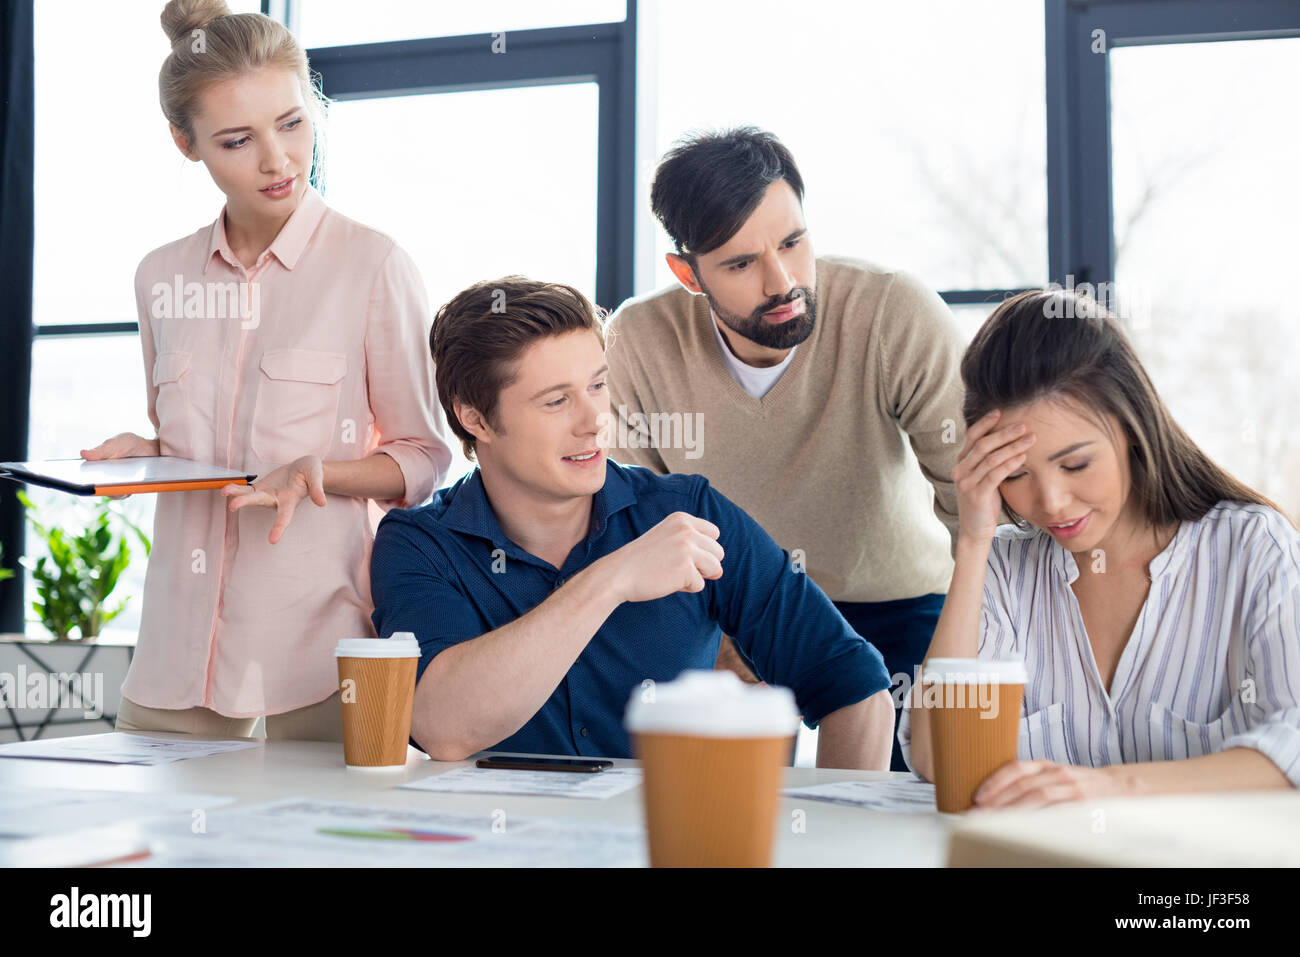 group of young business people looking at colleague on small business meeting - Stock Image